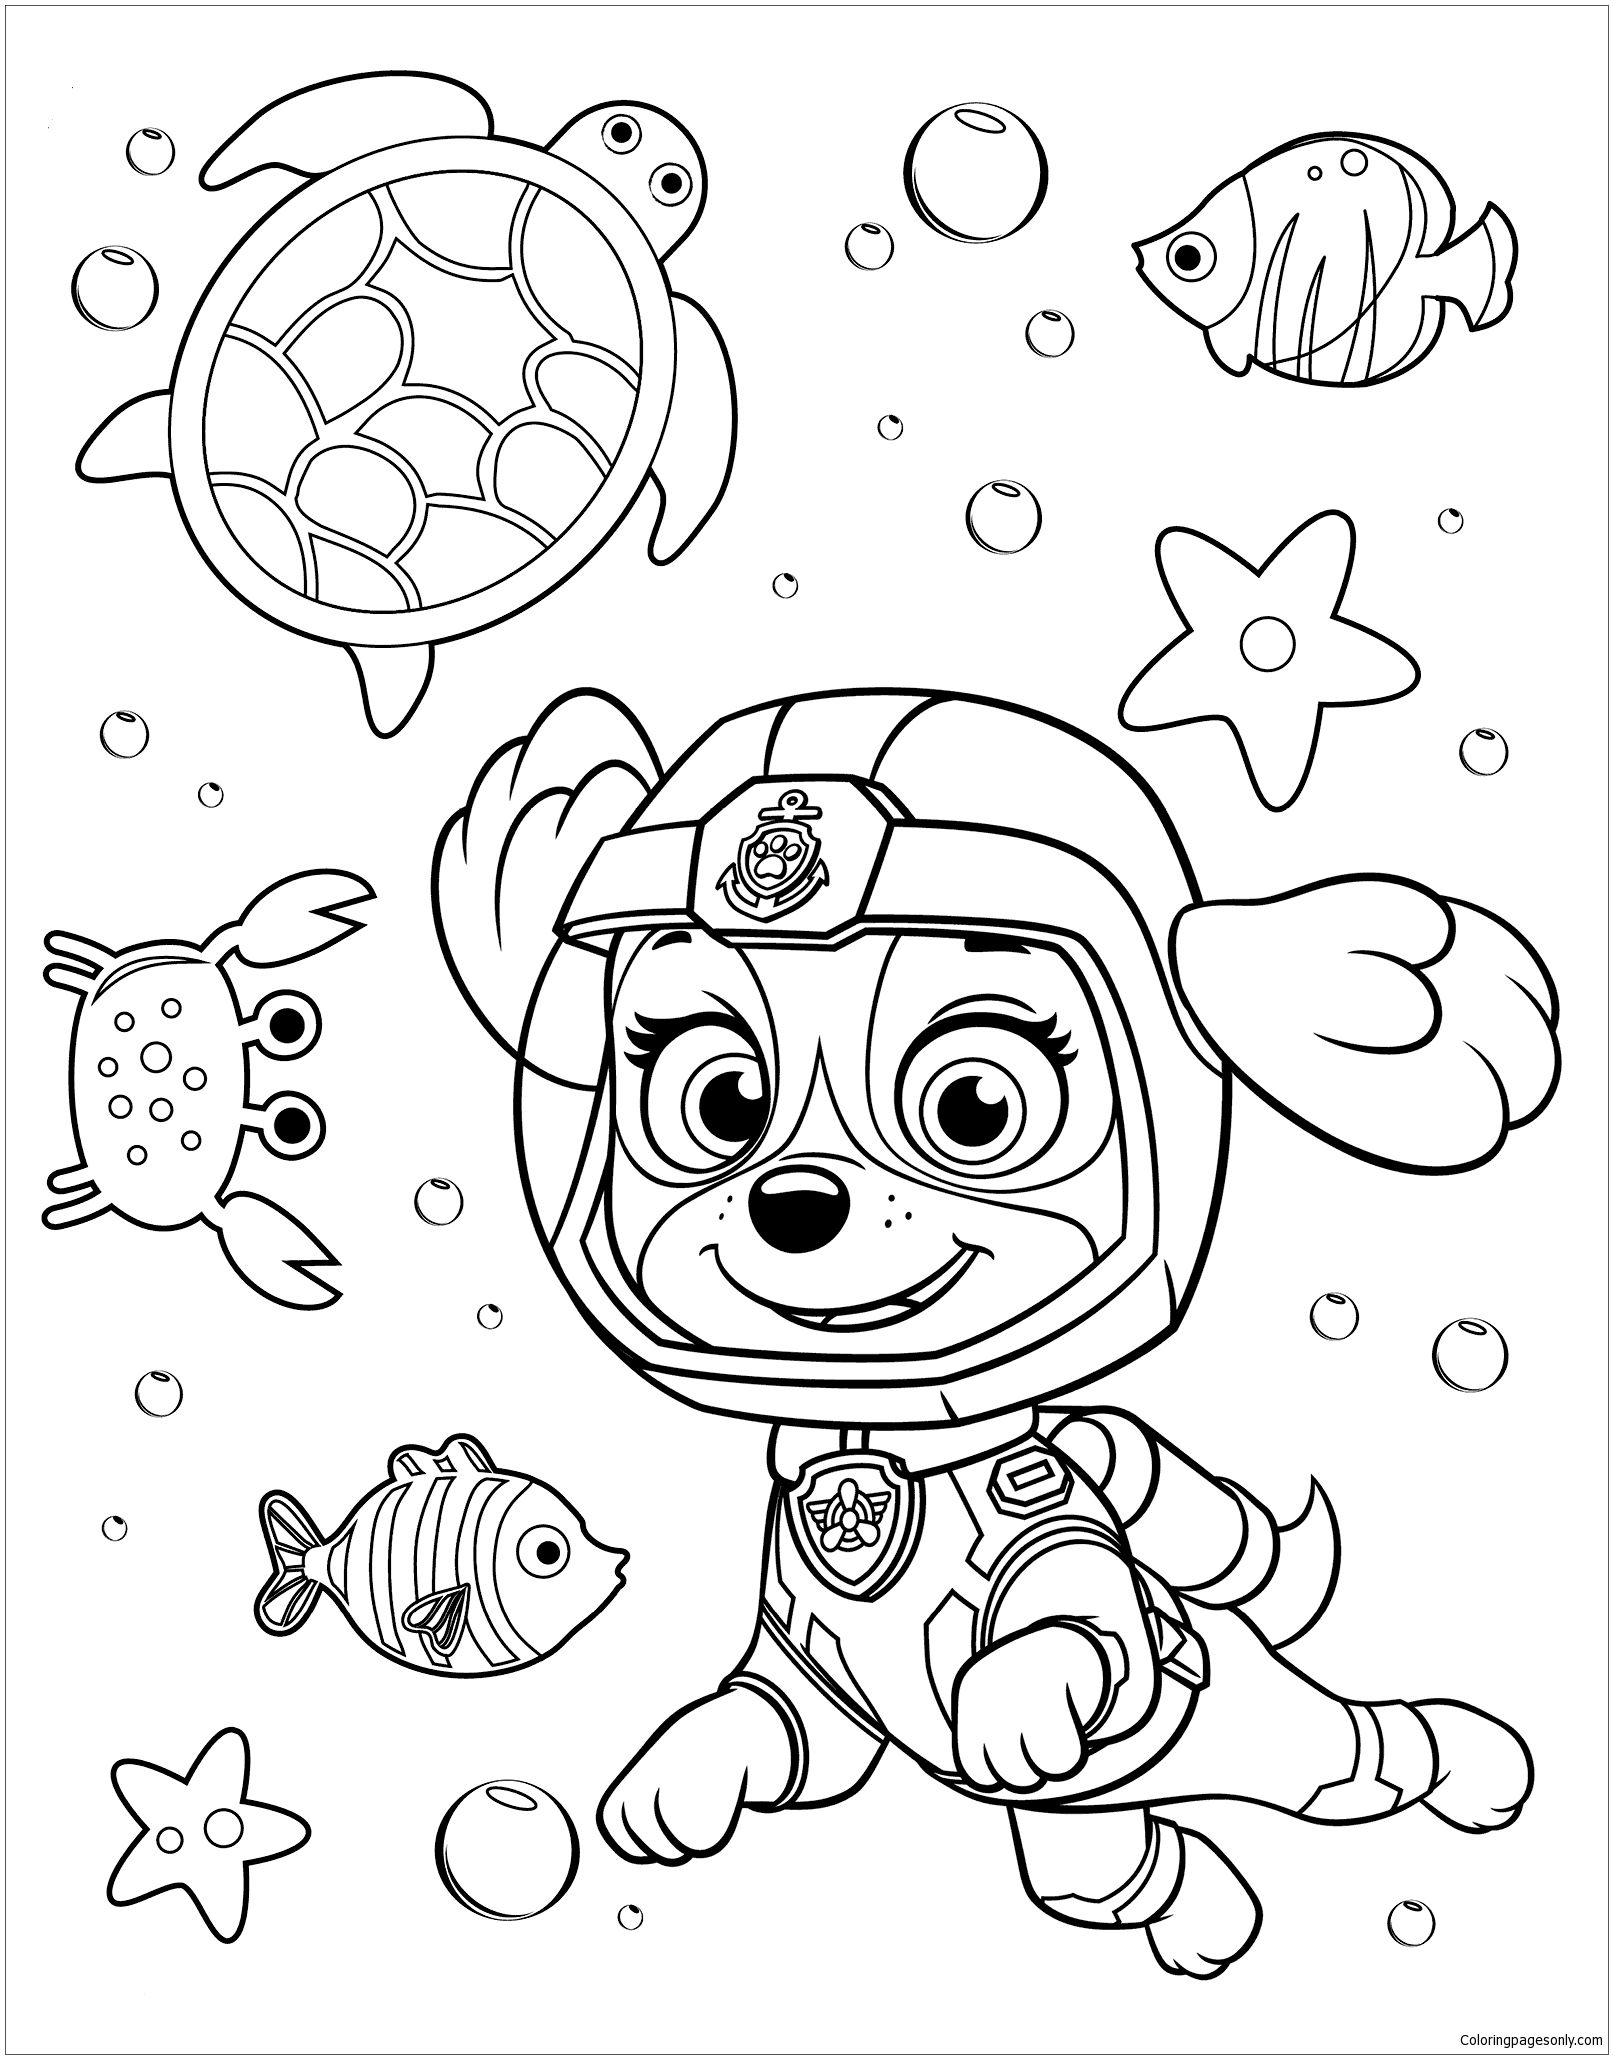 38 Best Paw Patrol Coloring Pages Ideas